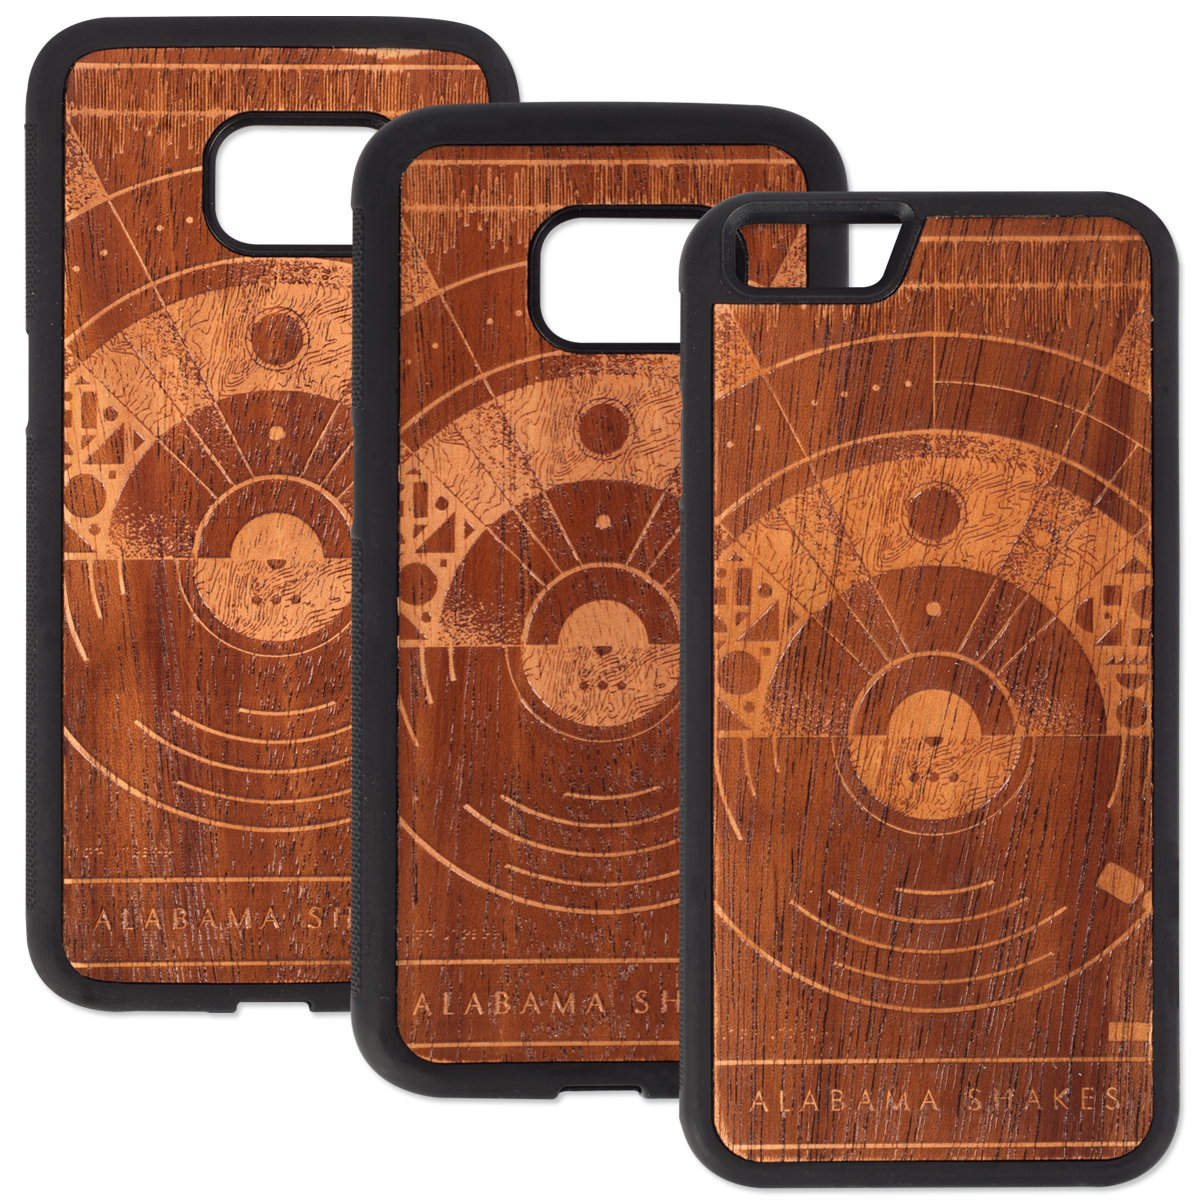 Alabama Shakes Phone Cases